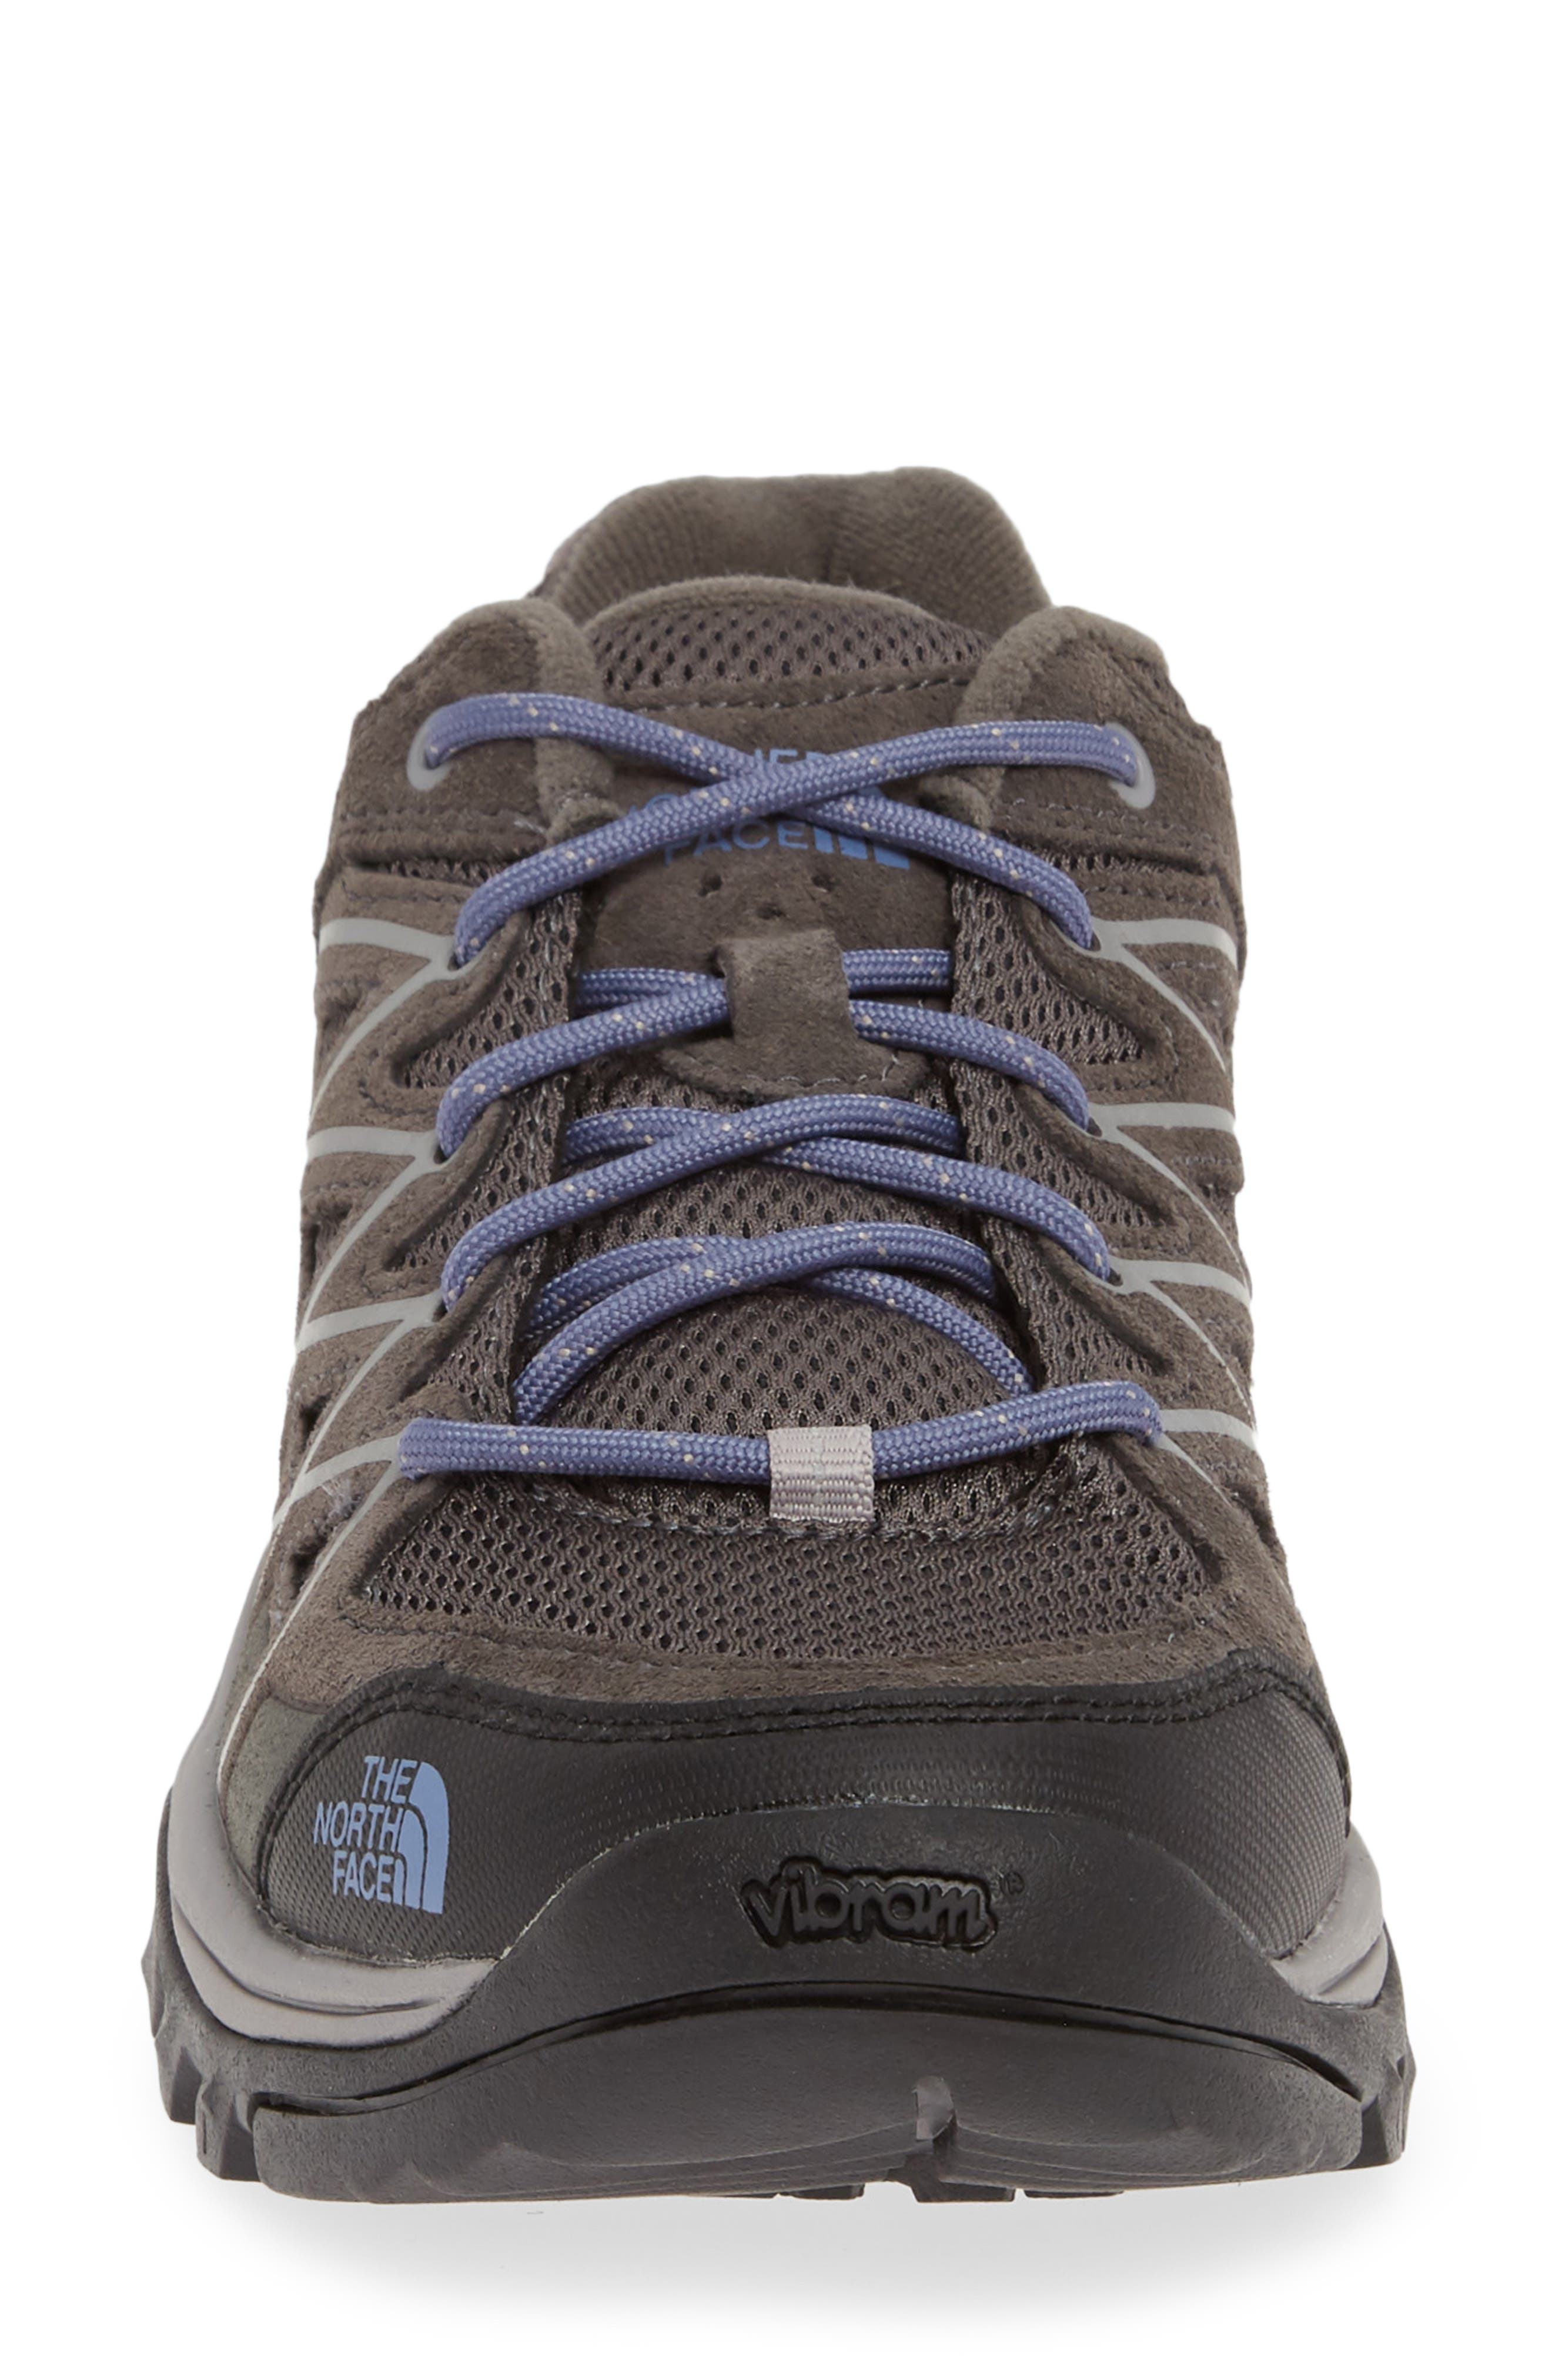 THE NORTH FACE, Storm III Waterproof Hiking Sneaker, Alternate thumbnail 4, color, DARK GULL GREY/ MARLIN BLUE